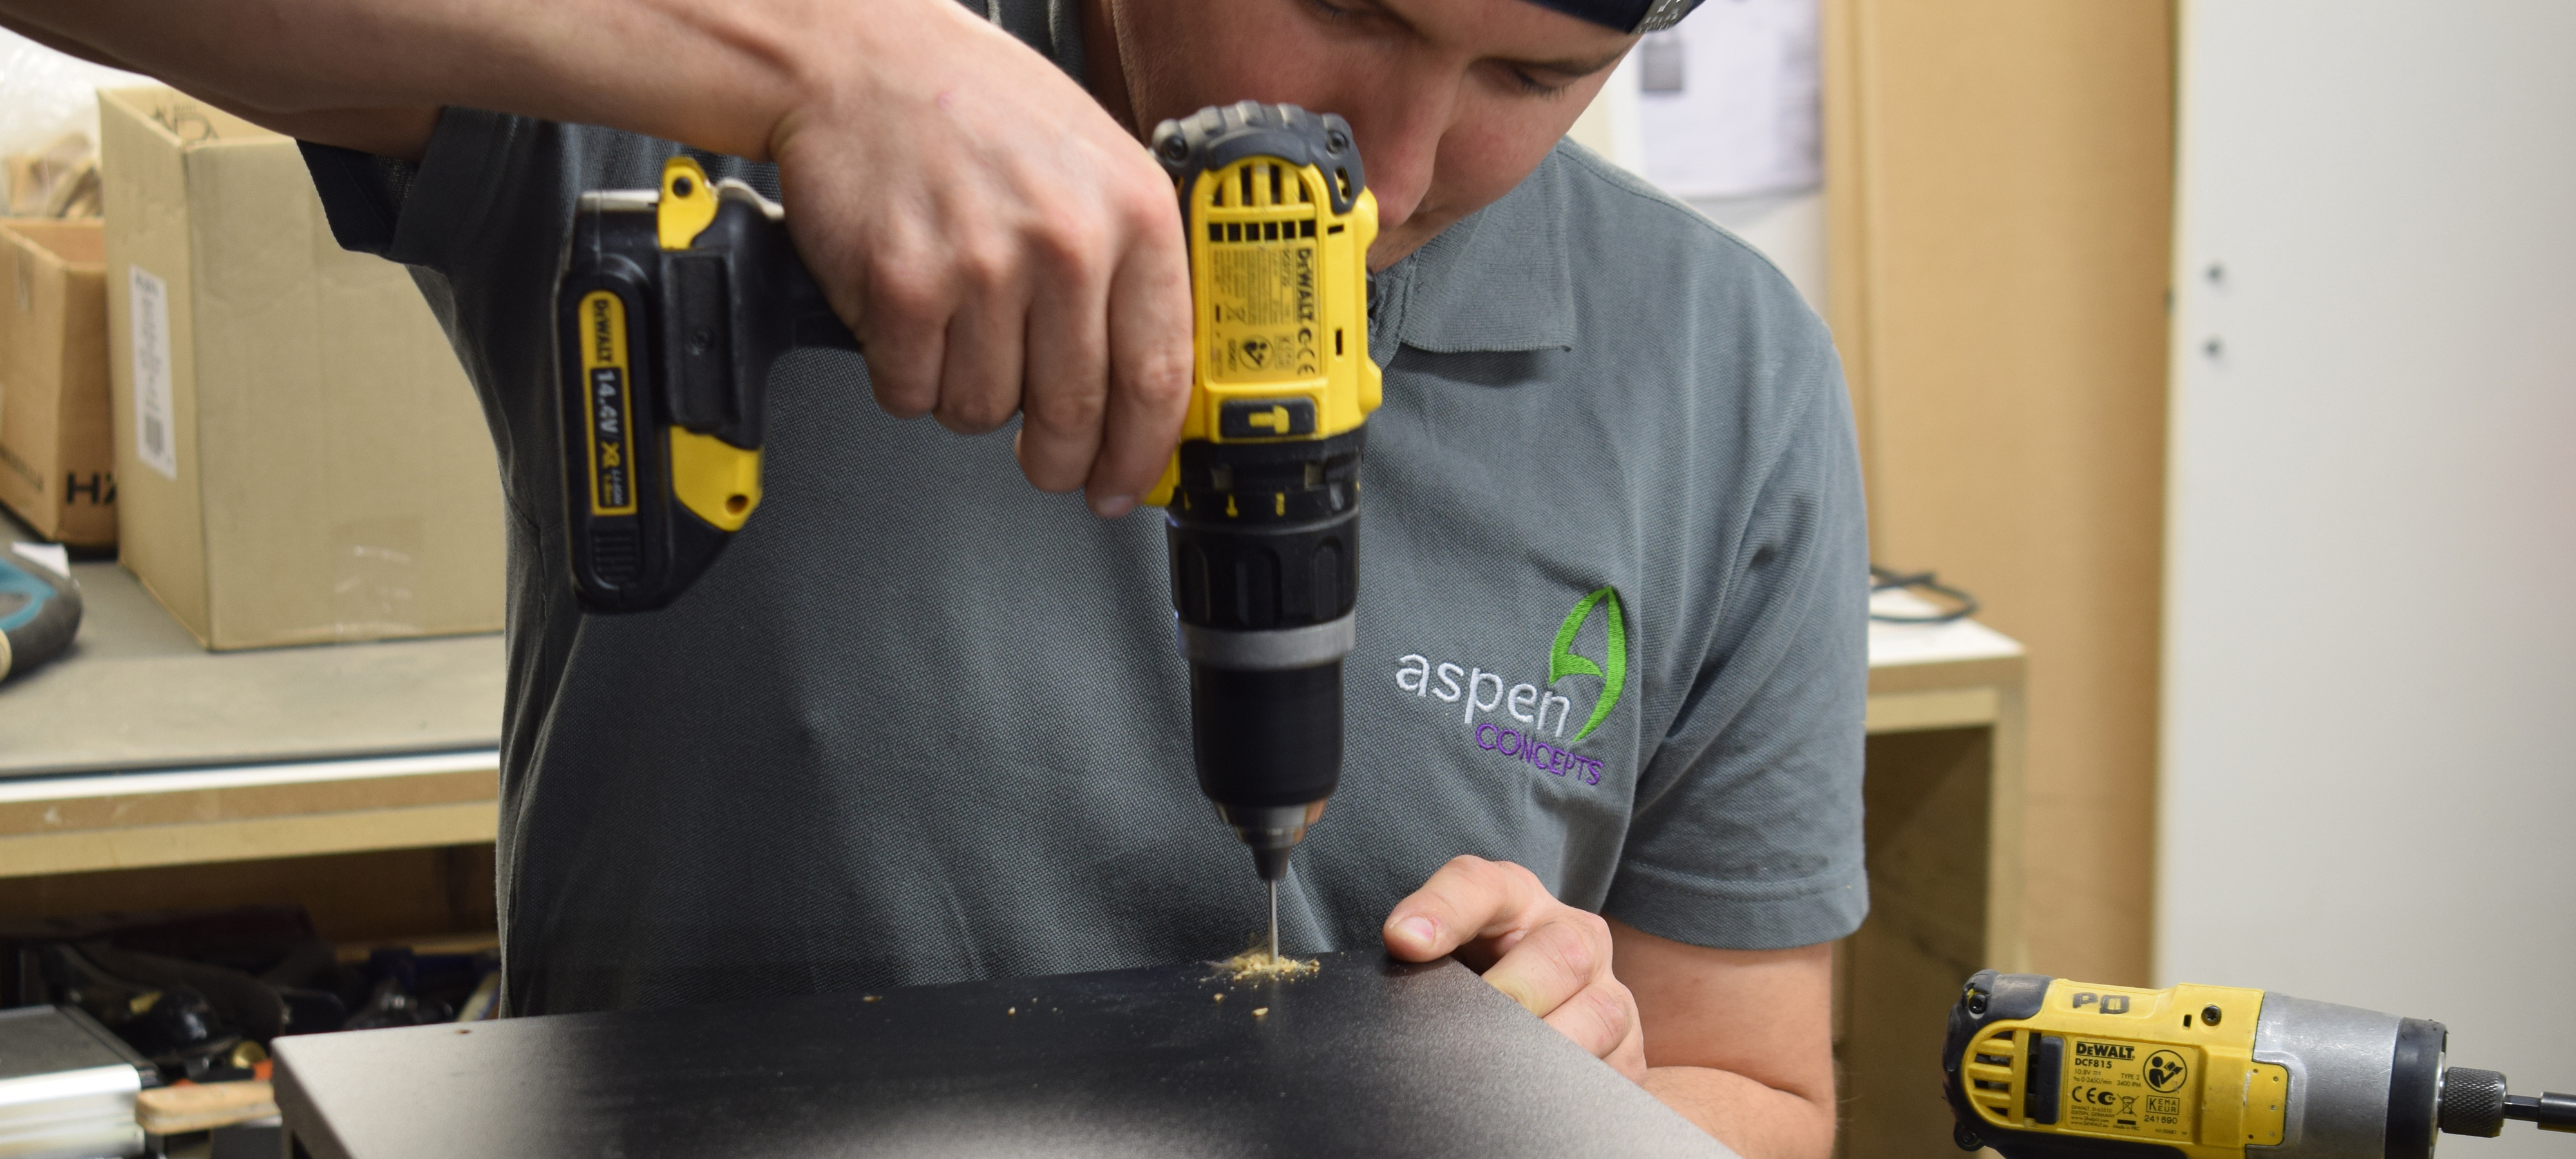 Bench joiner using a drill in Aspen Concepts Workshop